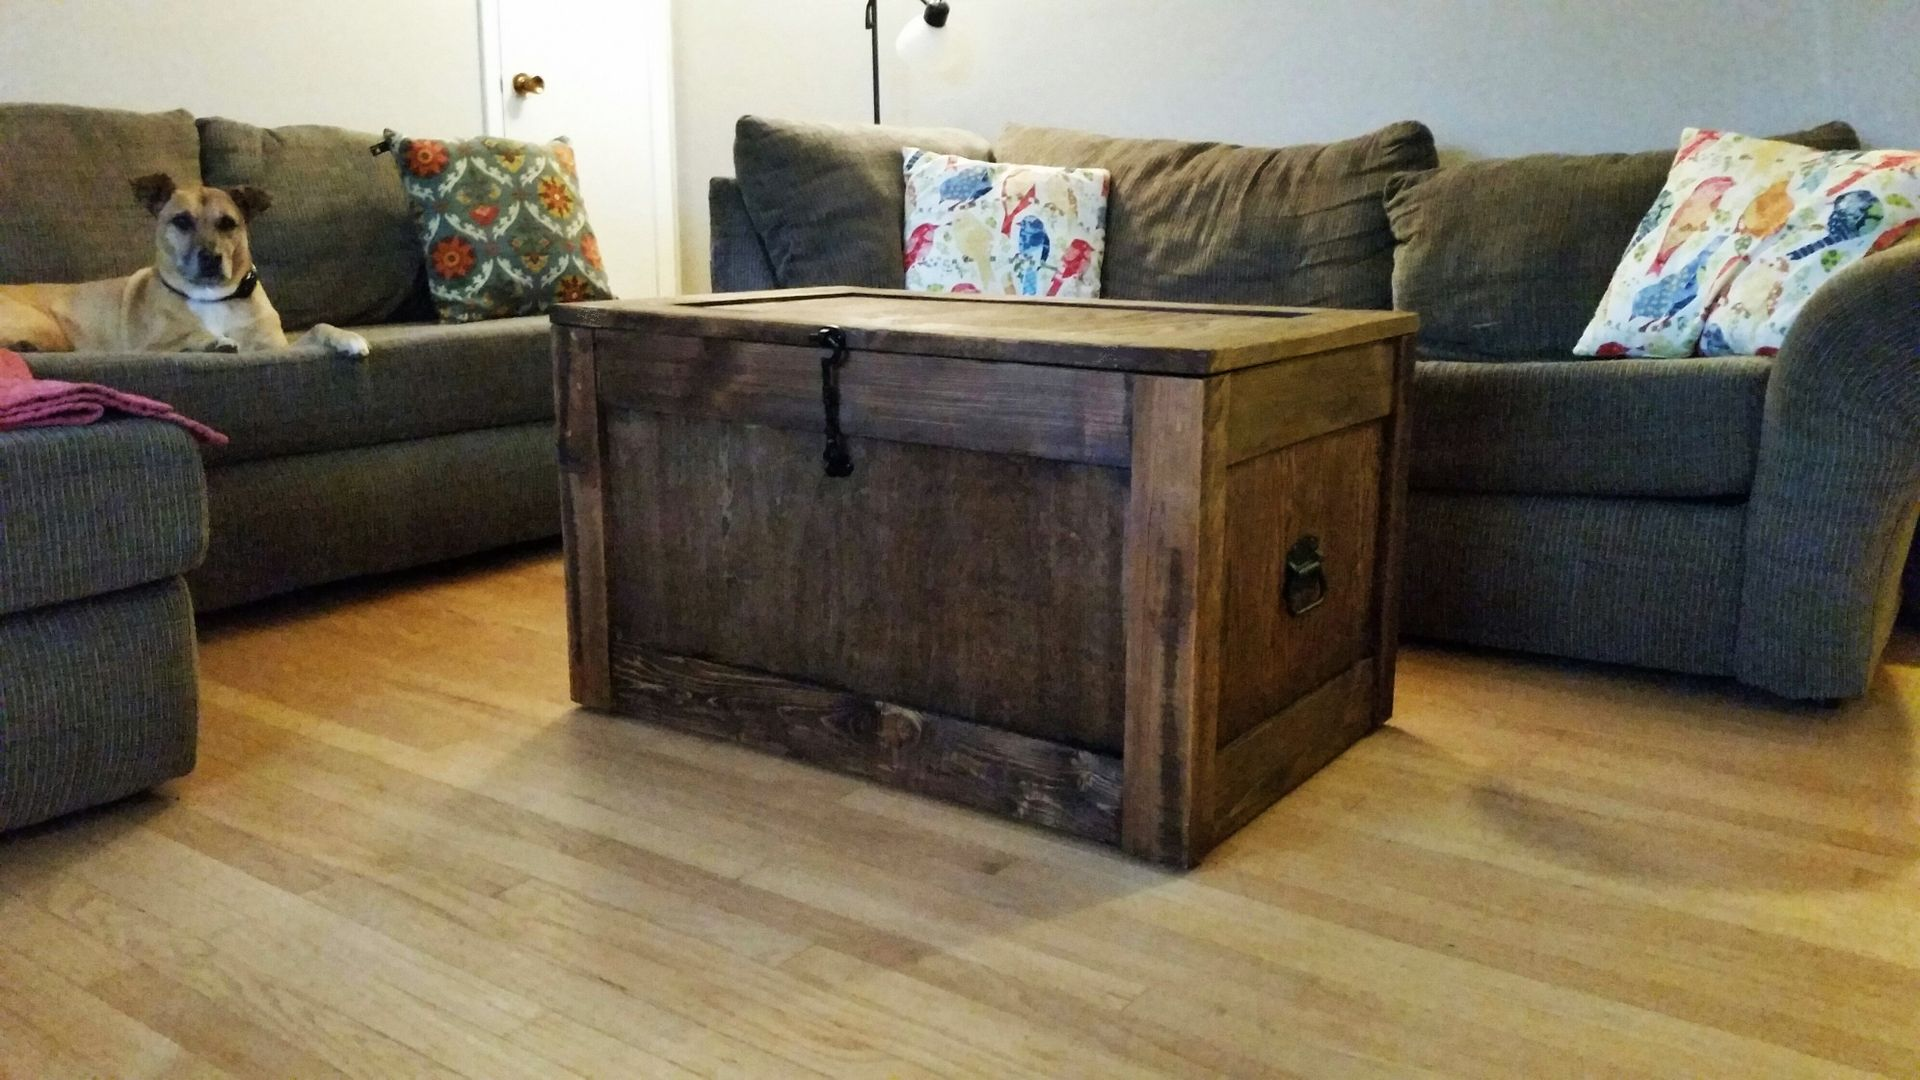 living room trunks. Custom Made Barnwood  Trunks Chests Steamer Trunk Coffee Table Storage Buy a Handmade